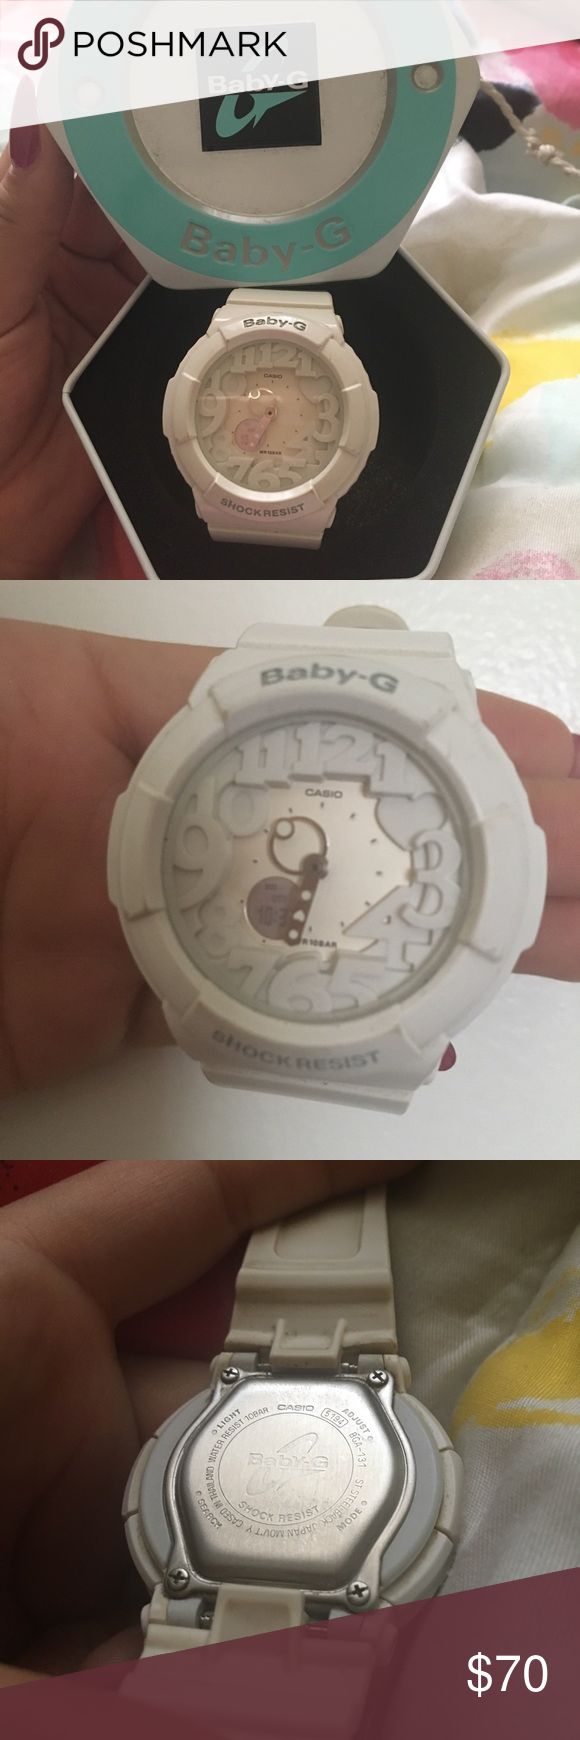 Baby g shock Super cute white baby shock with heart and light up features wore a handful of times still in amazing condition ! Original box included baby G shock Accessories Watches